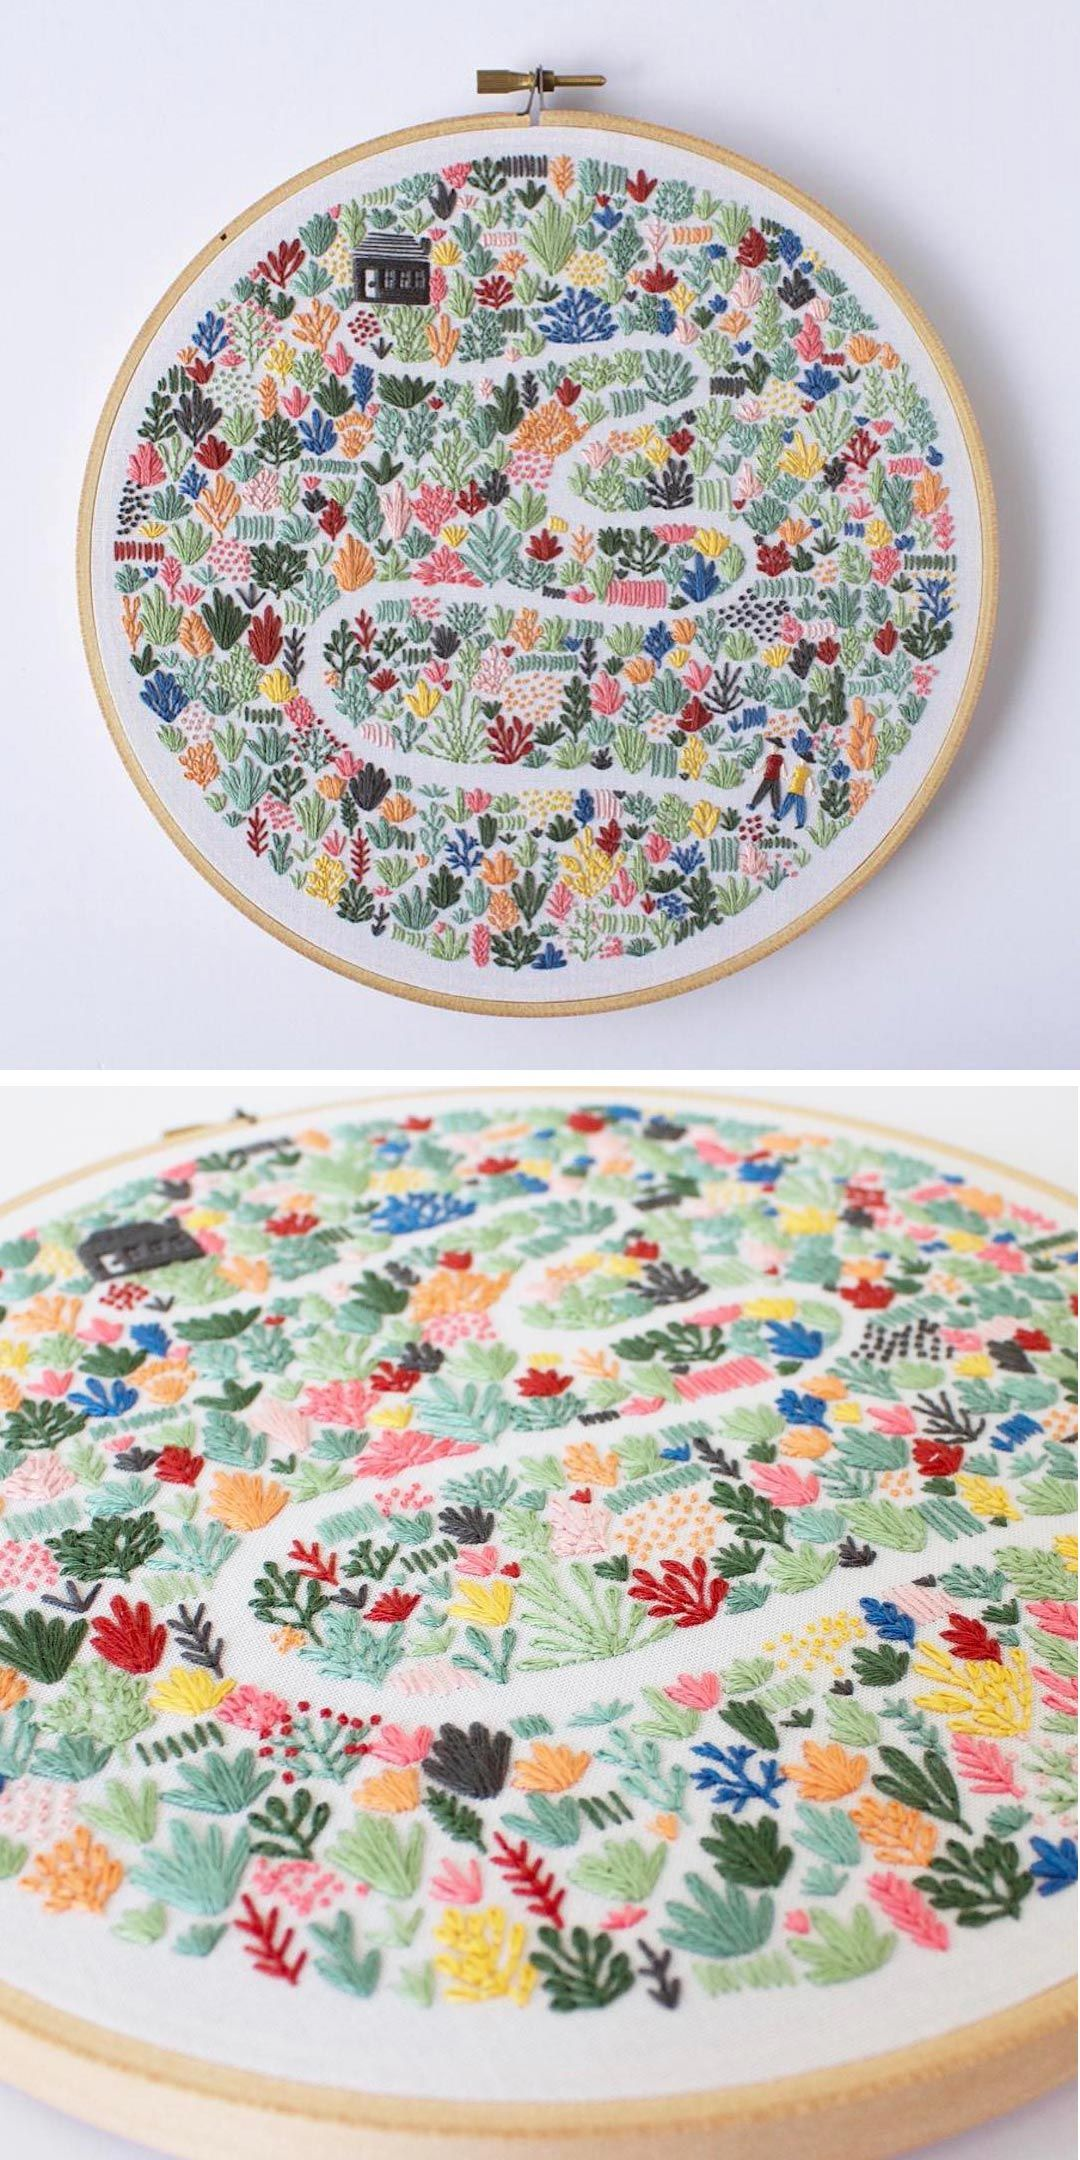 Modern Embroidery Patterns Highlight the Collaborative Nature of the Craft #embroidery